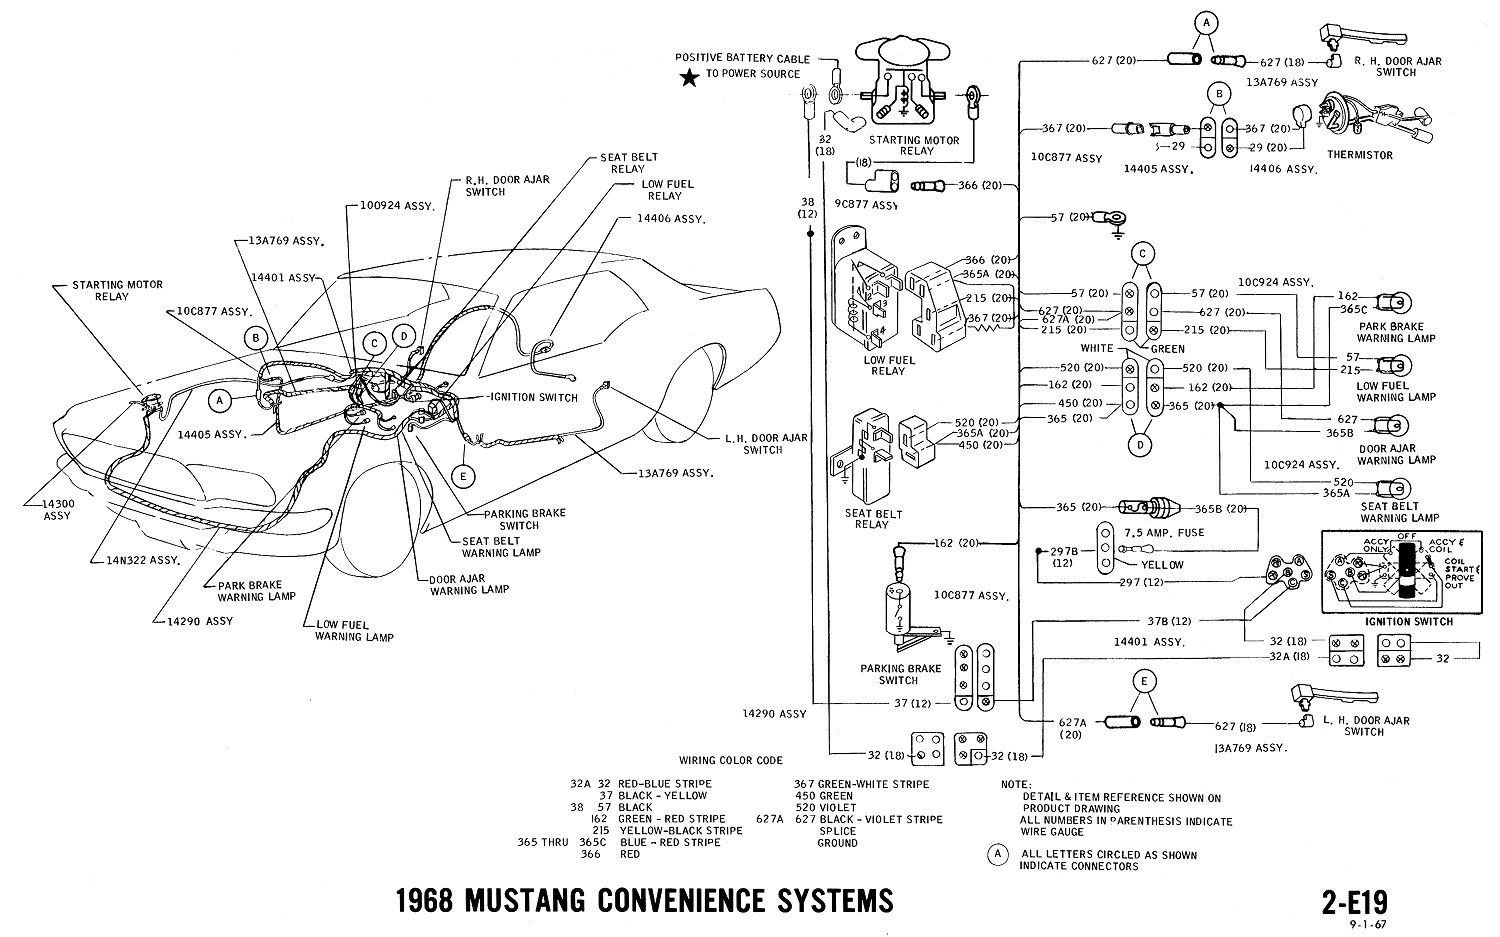 1968 mustang wiring diagrams and vacuum schematics average joe 1971 mustang wiring  schematic 1968 mustang wiring